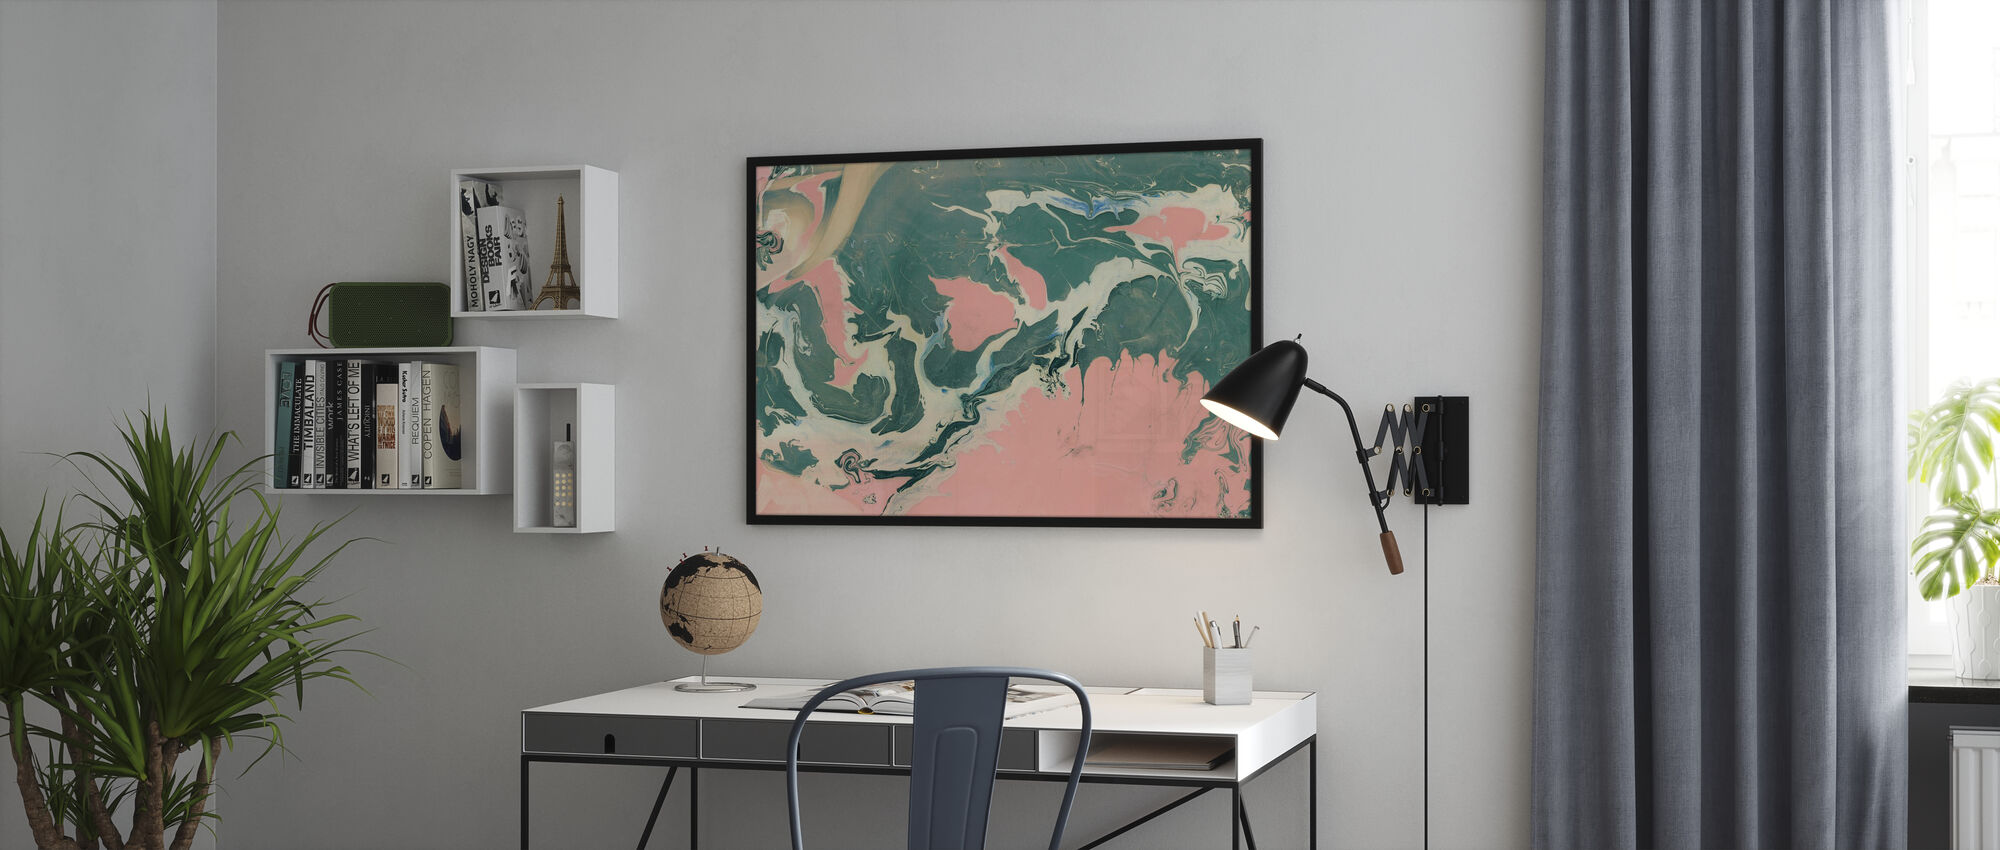 Confluence - Poster - Office